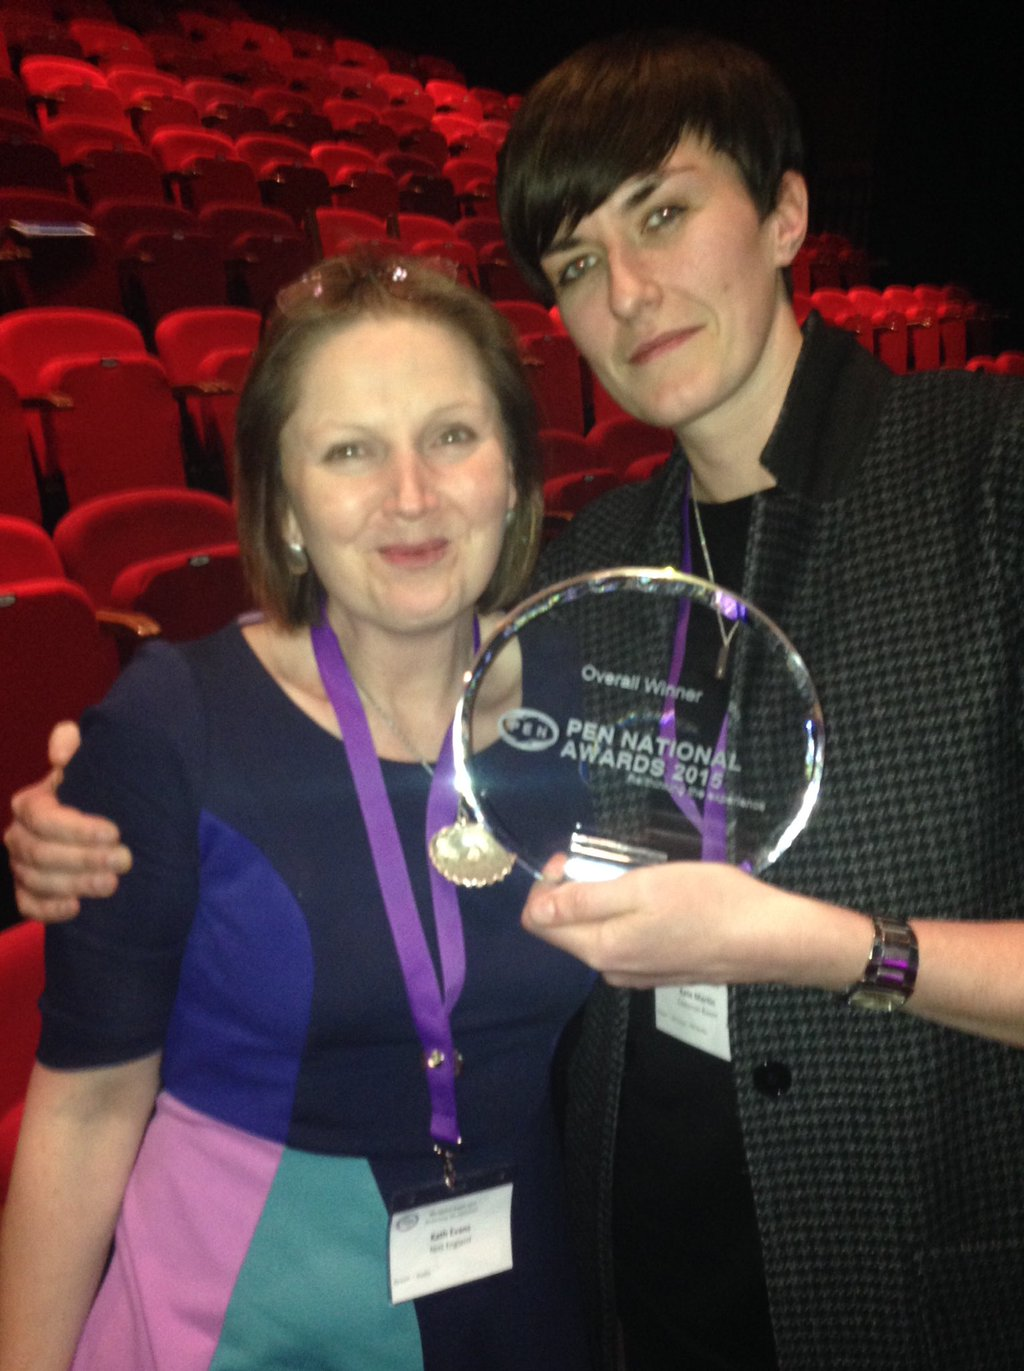 AWARDS – Me first is a double winner